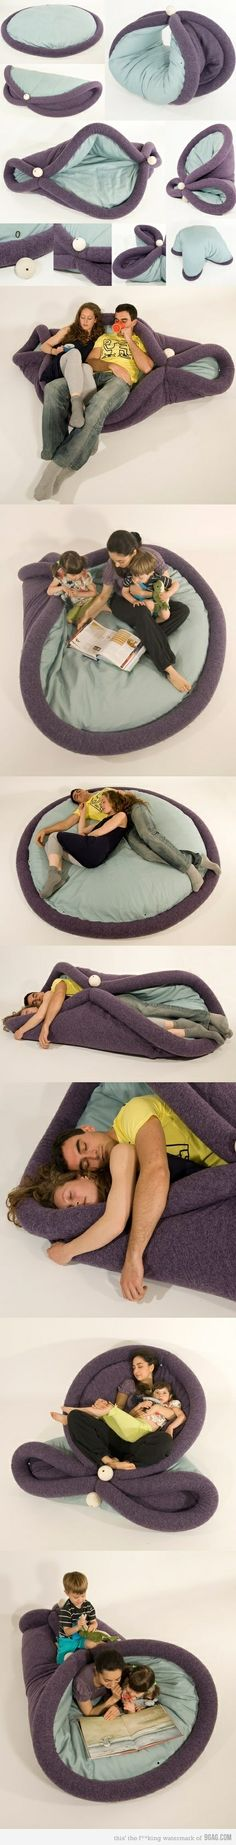 This is ridulous......i must have it